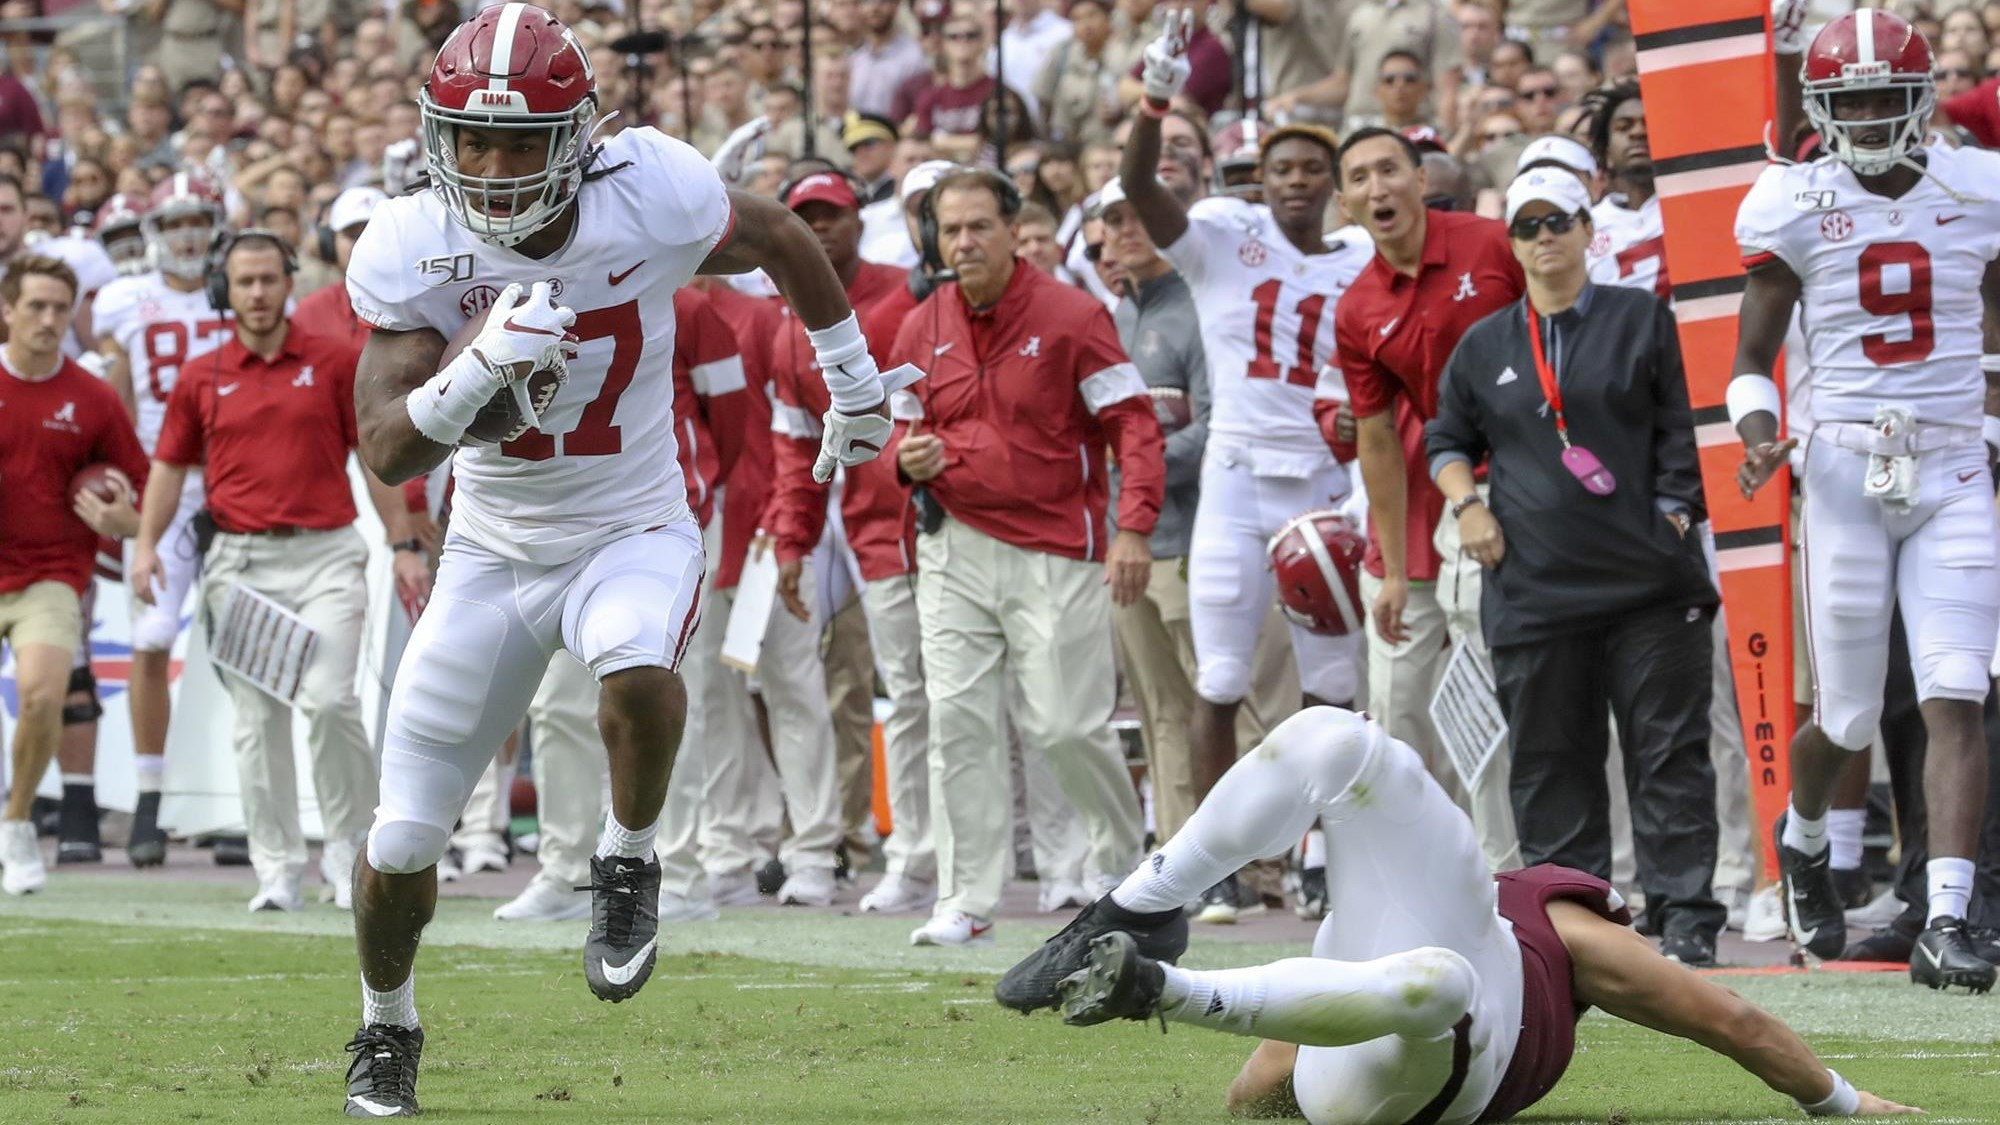 Could the Dolphins draft give Tua Tagovailoa some familiarity with Jaylen Waddle? Credit - rolltide.com